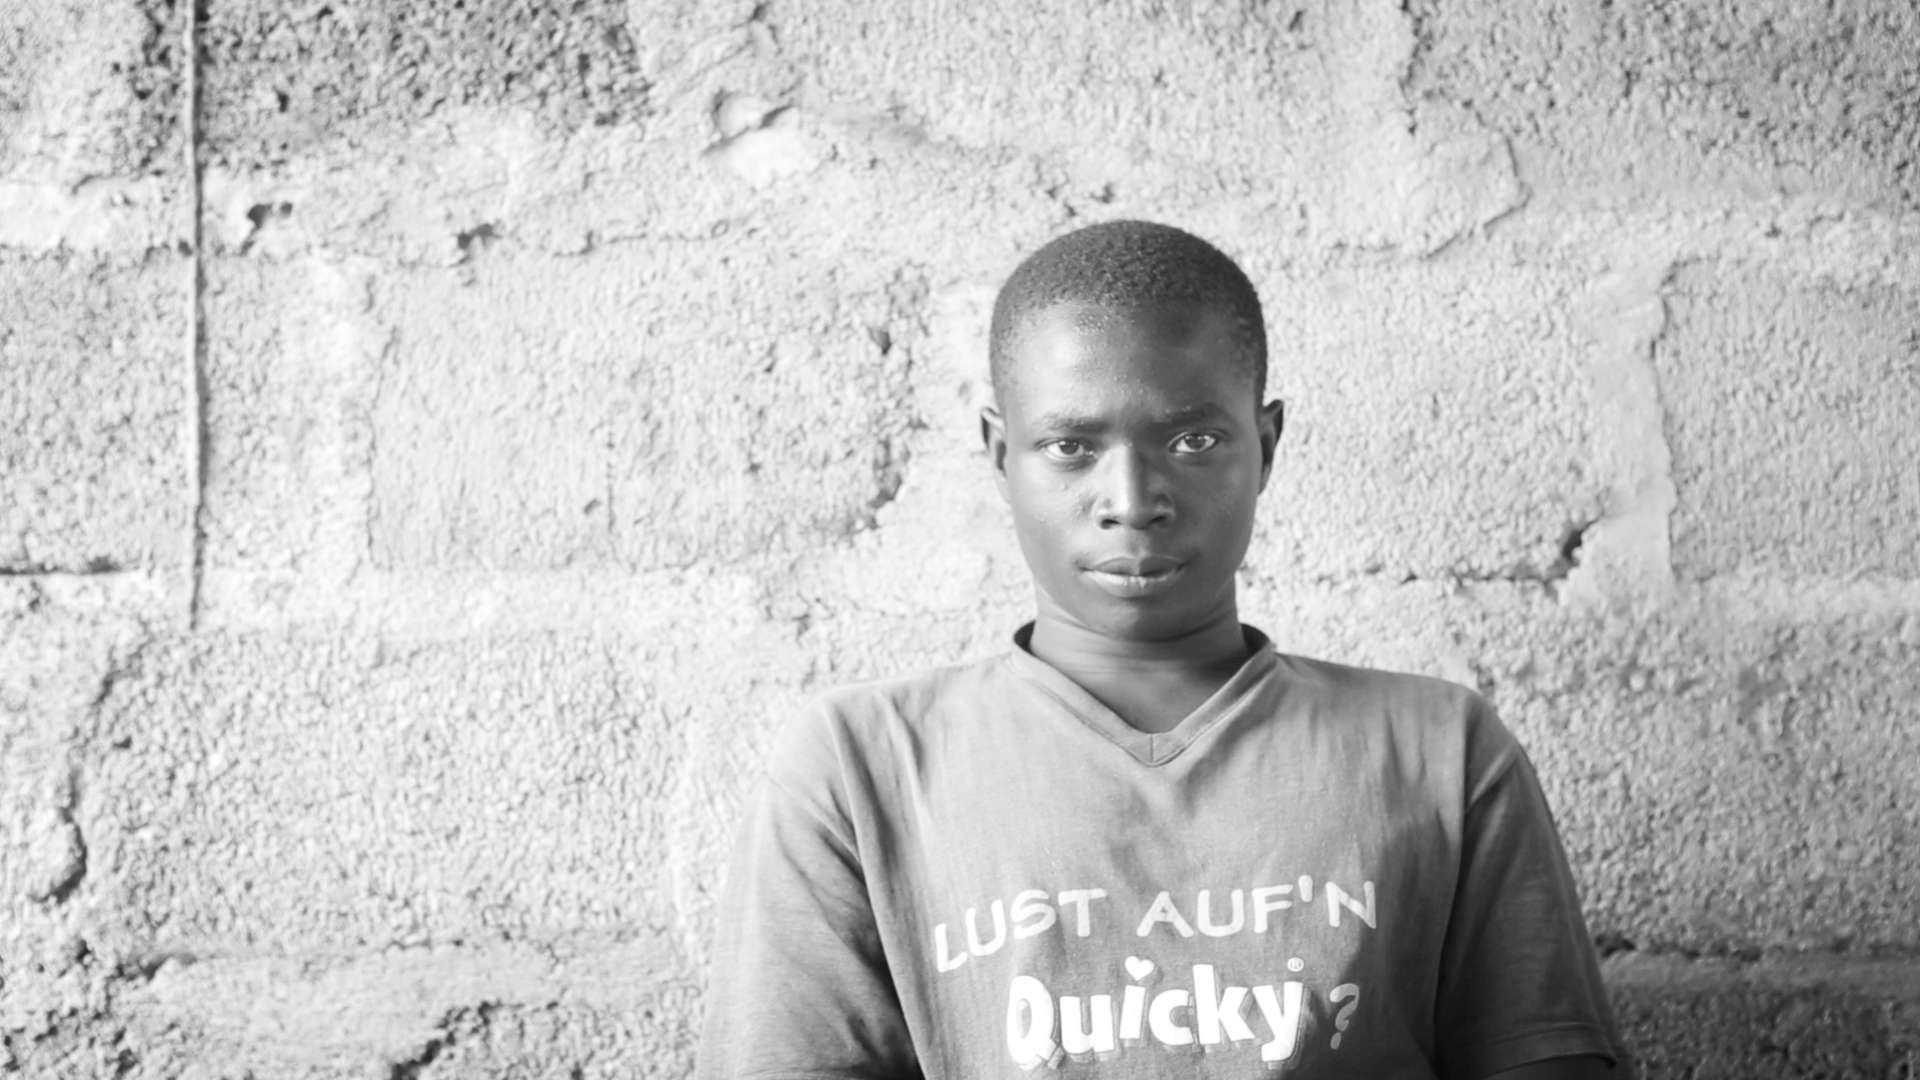 Dusty, 19: after his grandmother died, he was too scared of his brother to return home, so he went to live on the streets.